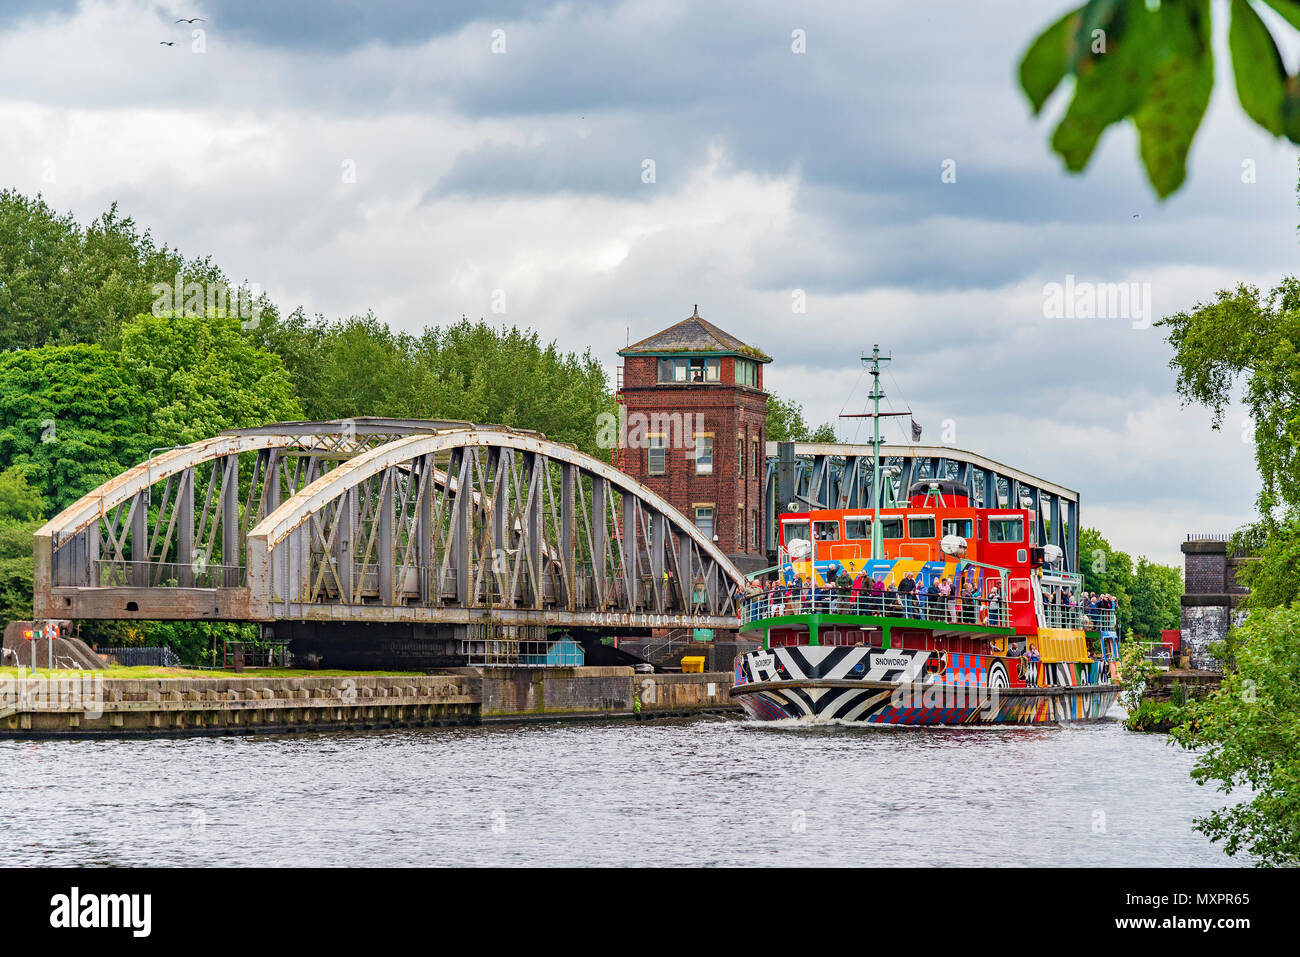 Barton road bridge and aqueduct on the Manchester Ship Canal. Mersey Ferries Dazzle ferry Snowdrop passing through. - Stock Image